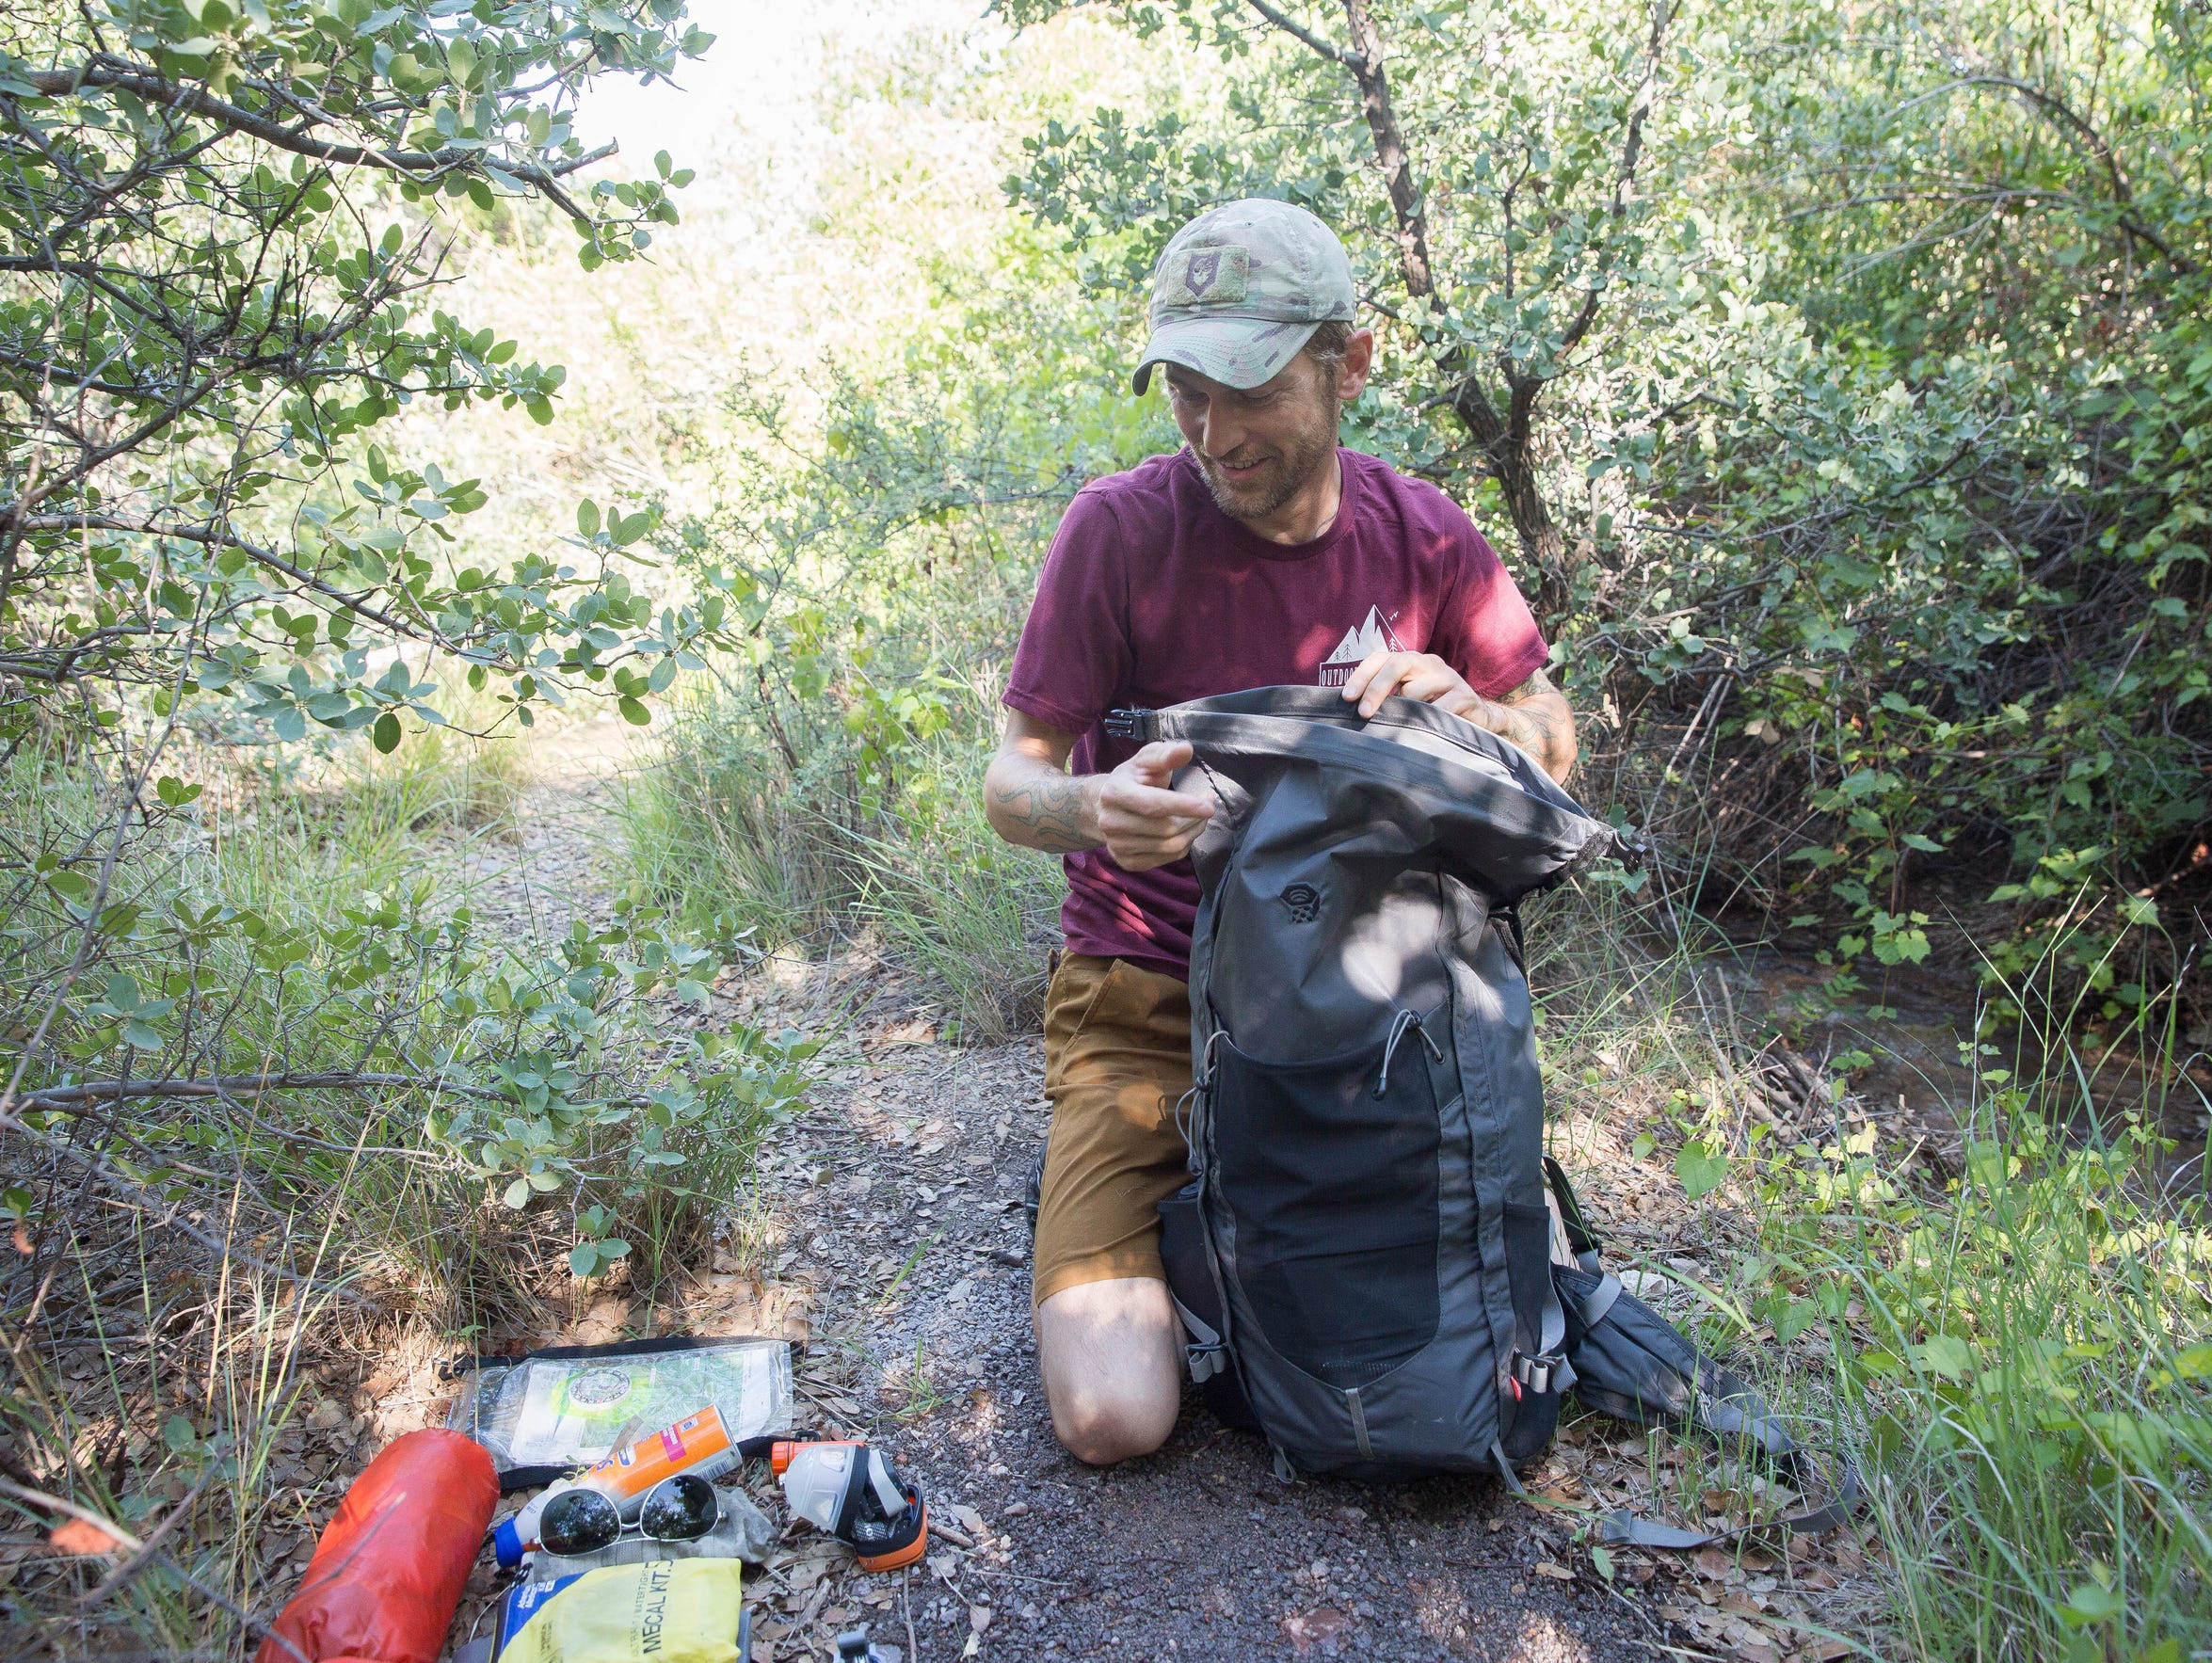 Anthony McGlone, who teaches a backpacking course at